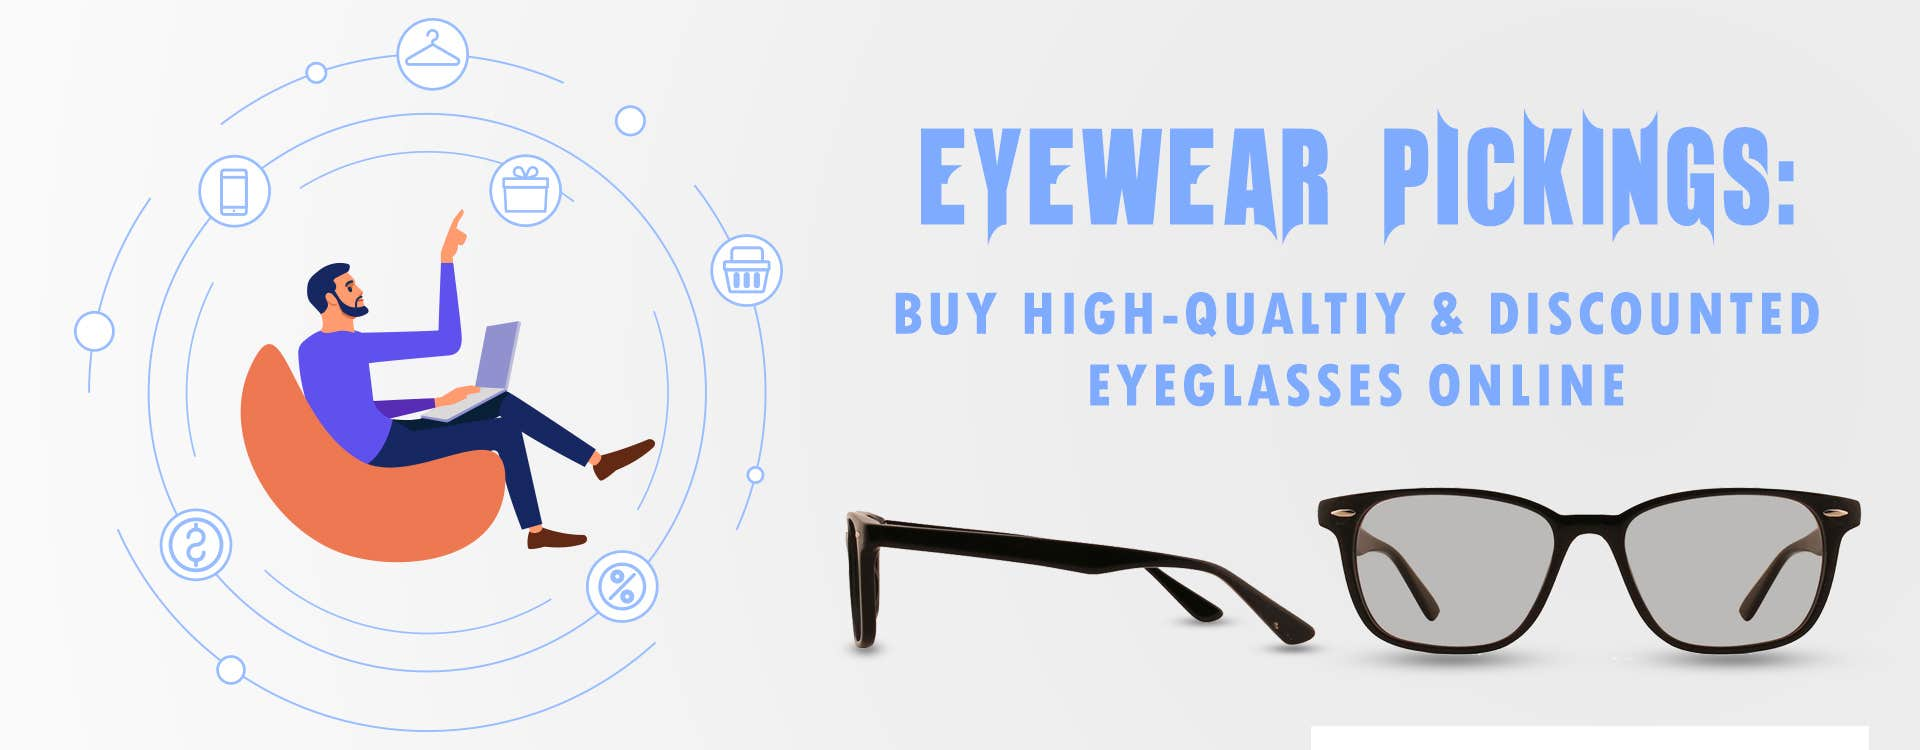 Eyewear Pickings: Buy High-Quality & Discounted Eyeglasses Online